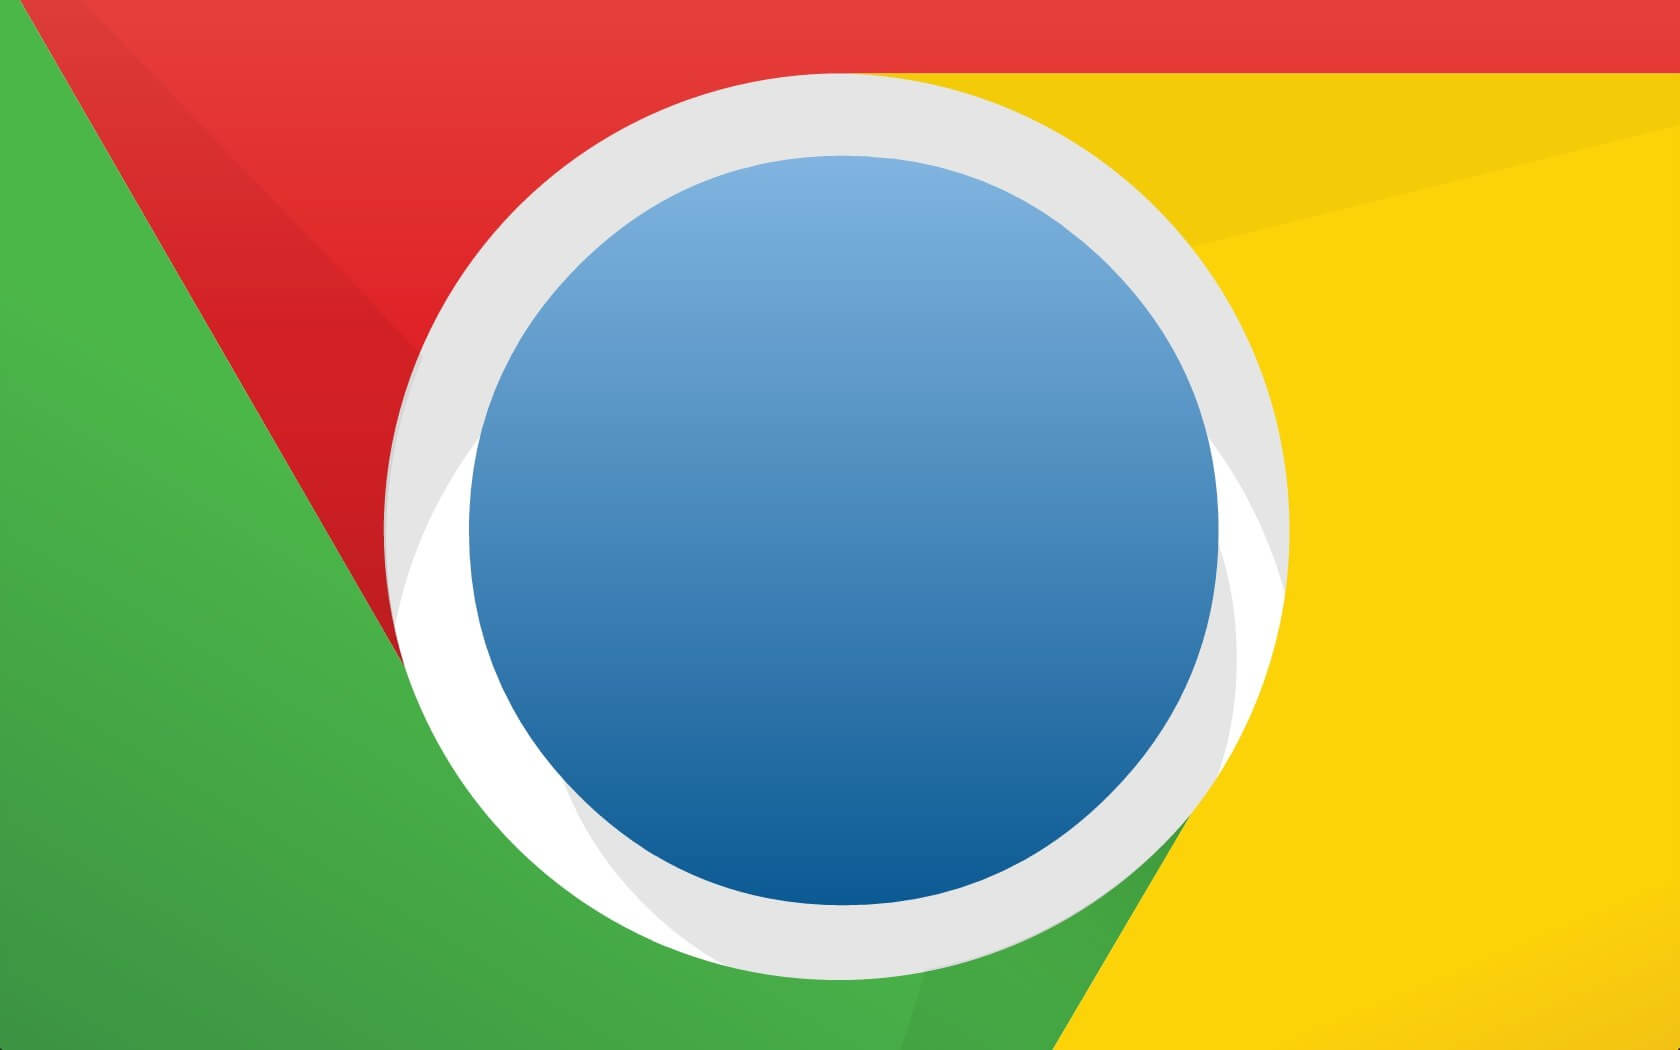 Chrome to start warning users about malicious subscription scams